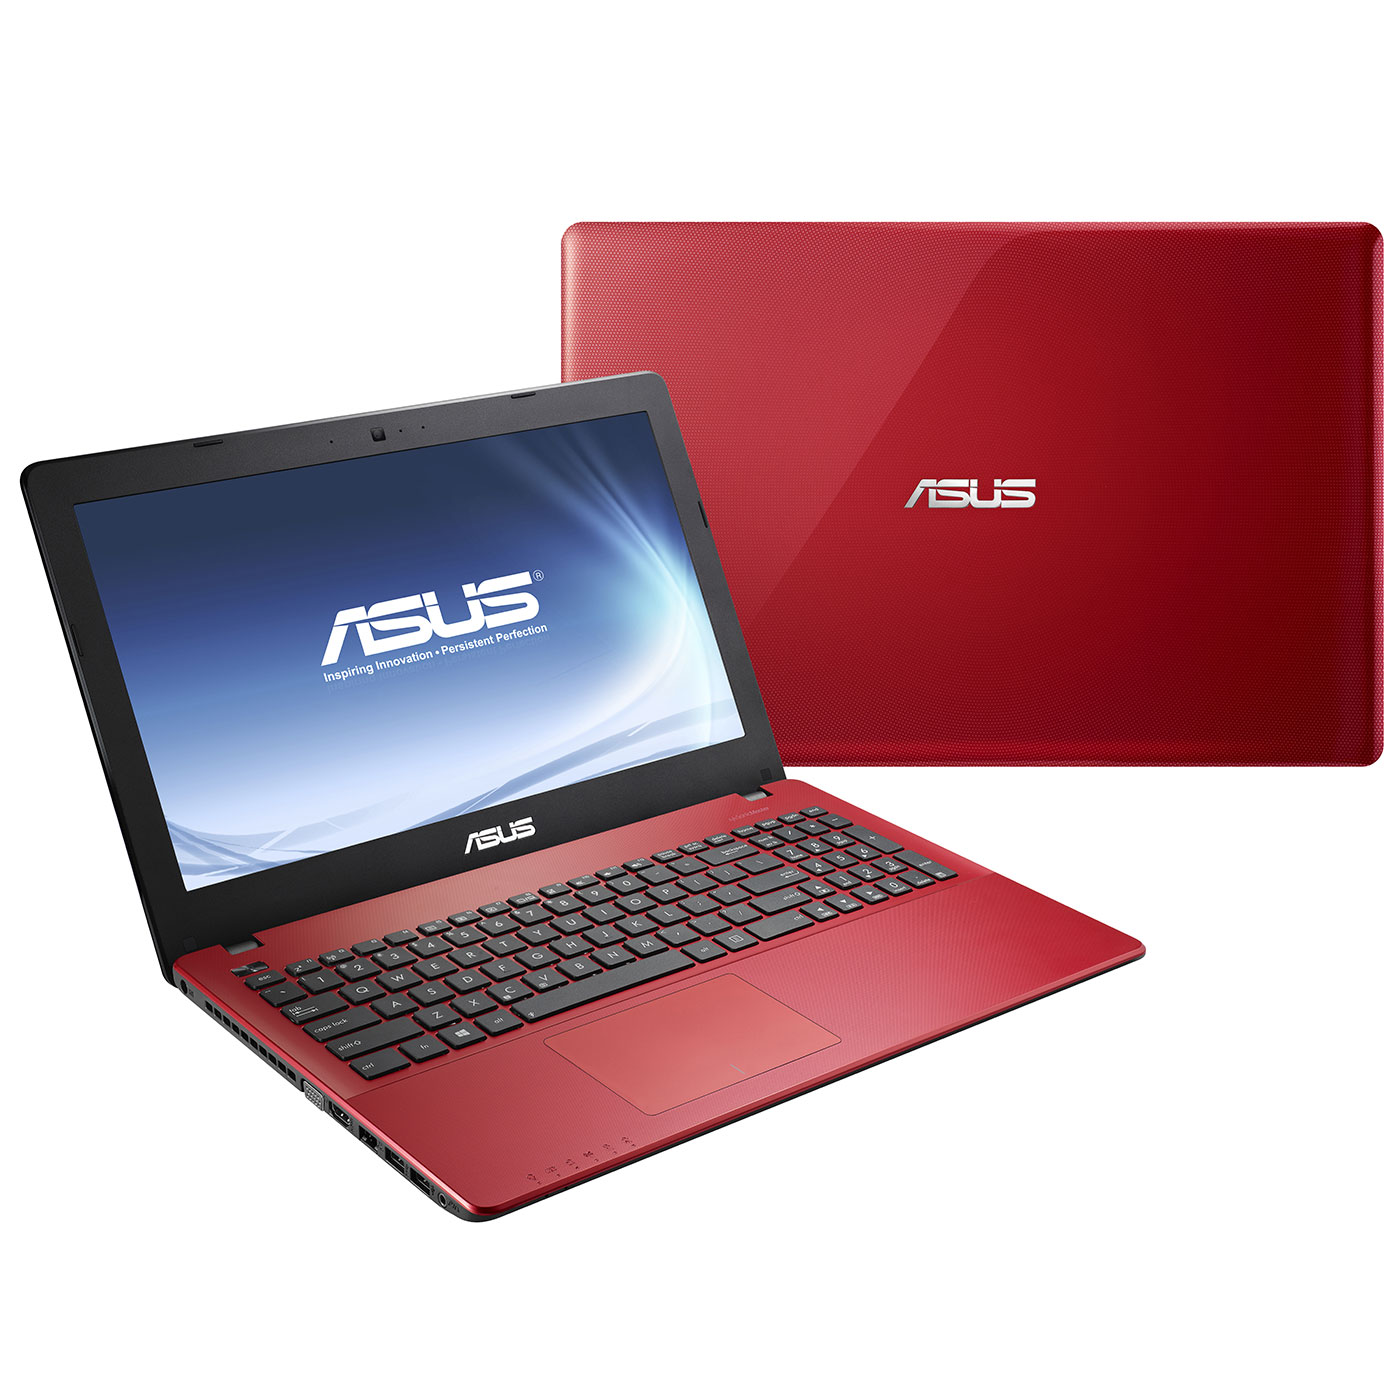 asus r510lav xx962h rouge 90nb02f7 m12320 achat vente pc portable sur. Black Bedroom Furniture Sets. Home Design Ideas